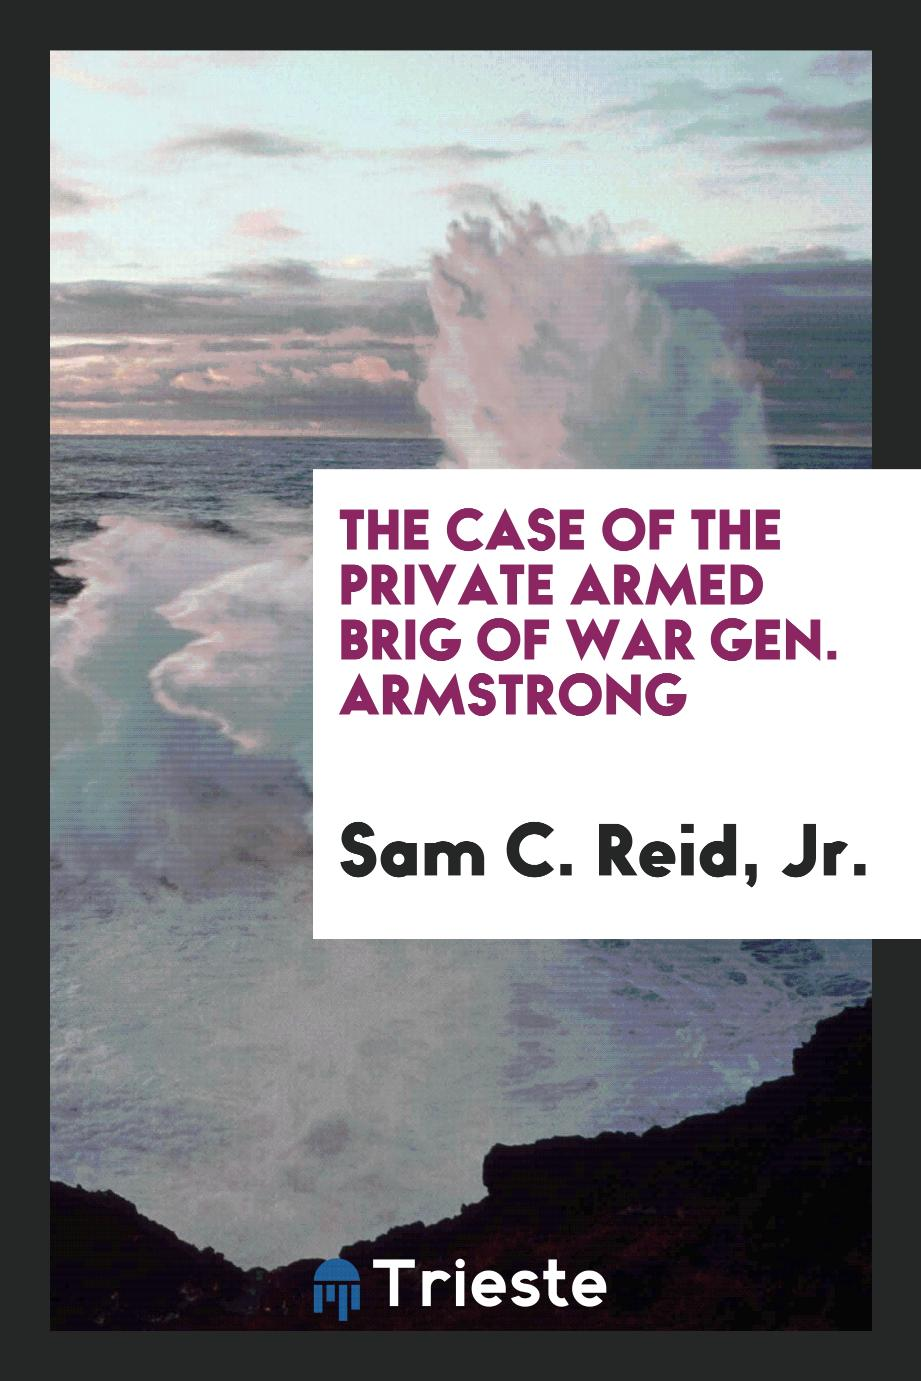 The Case of the Private Armed Brig of War Gen. Armstrong